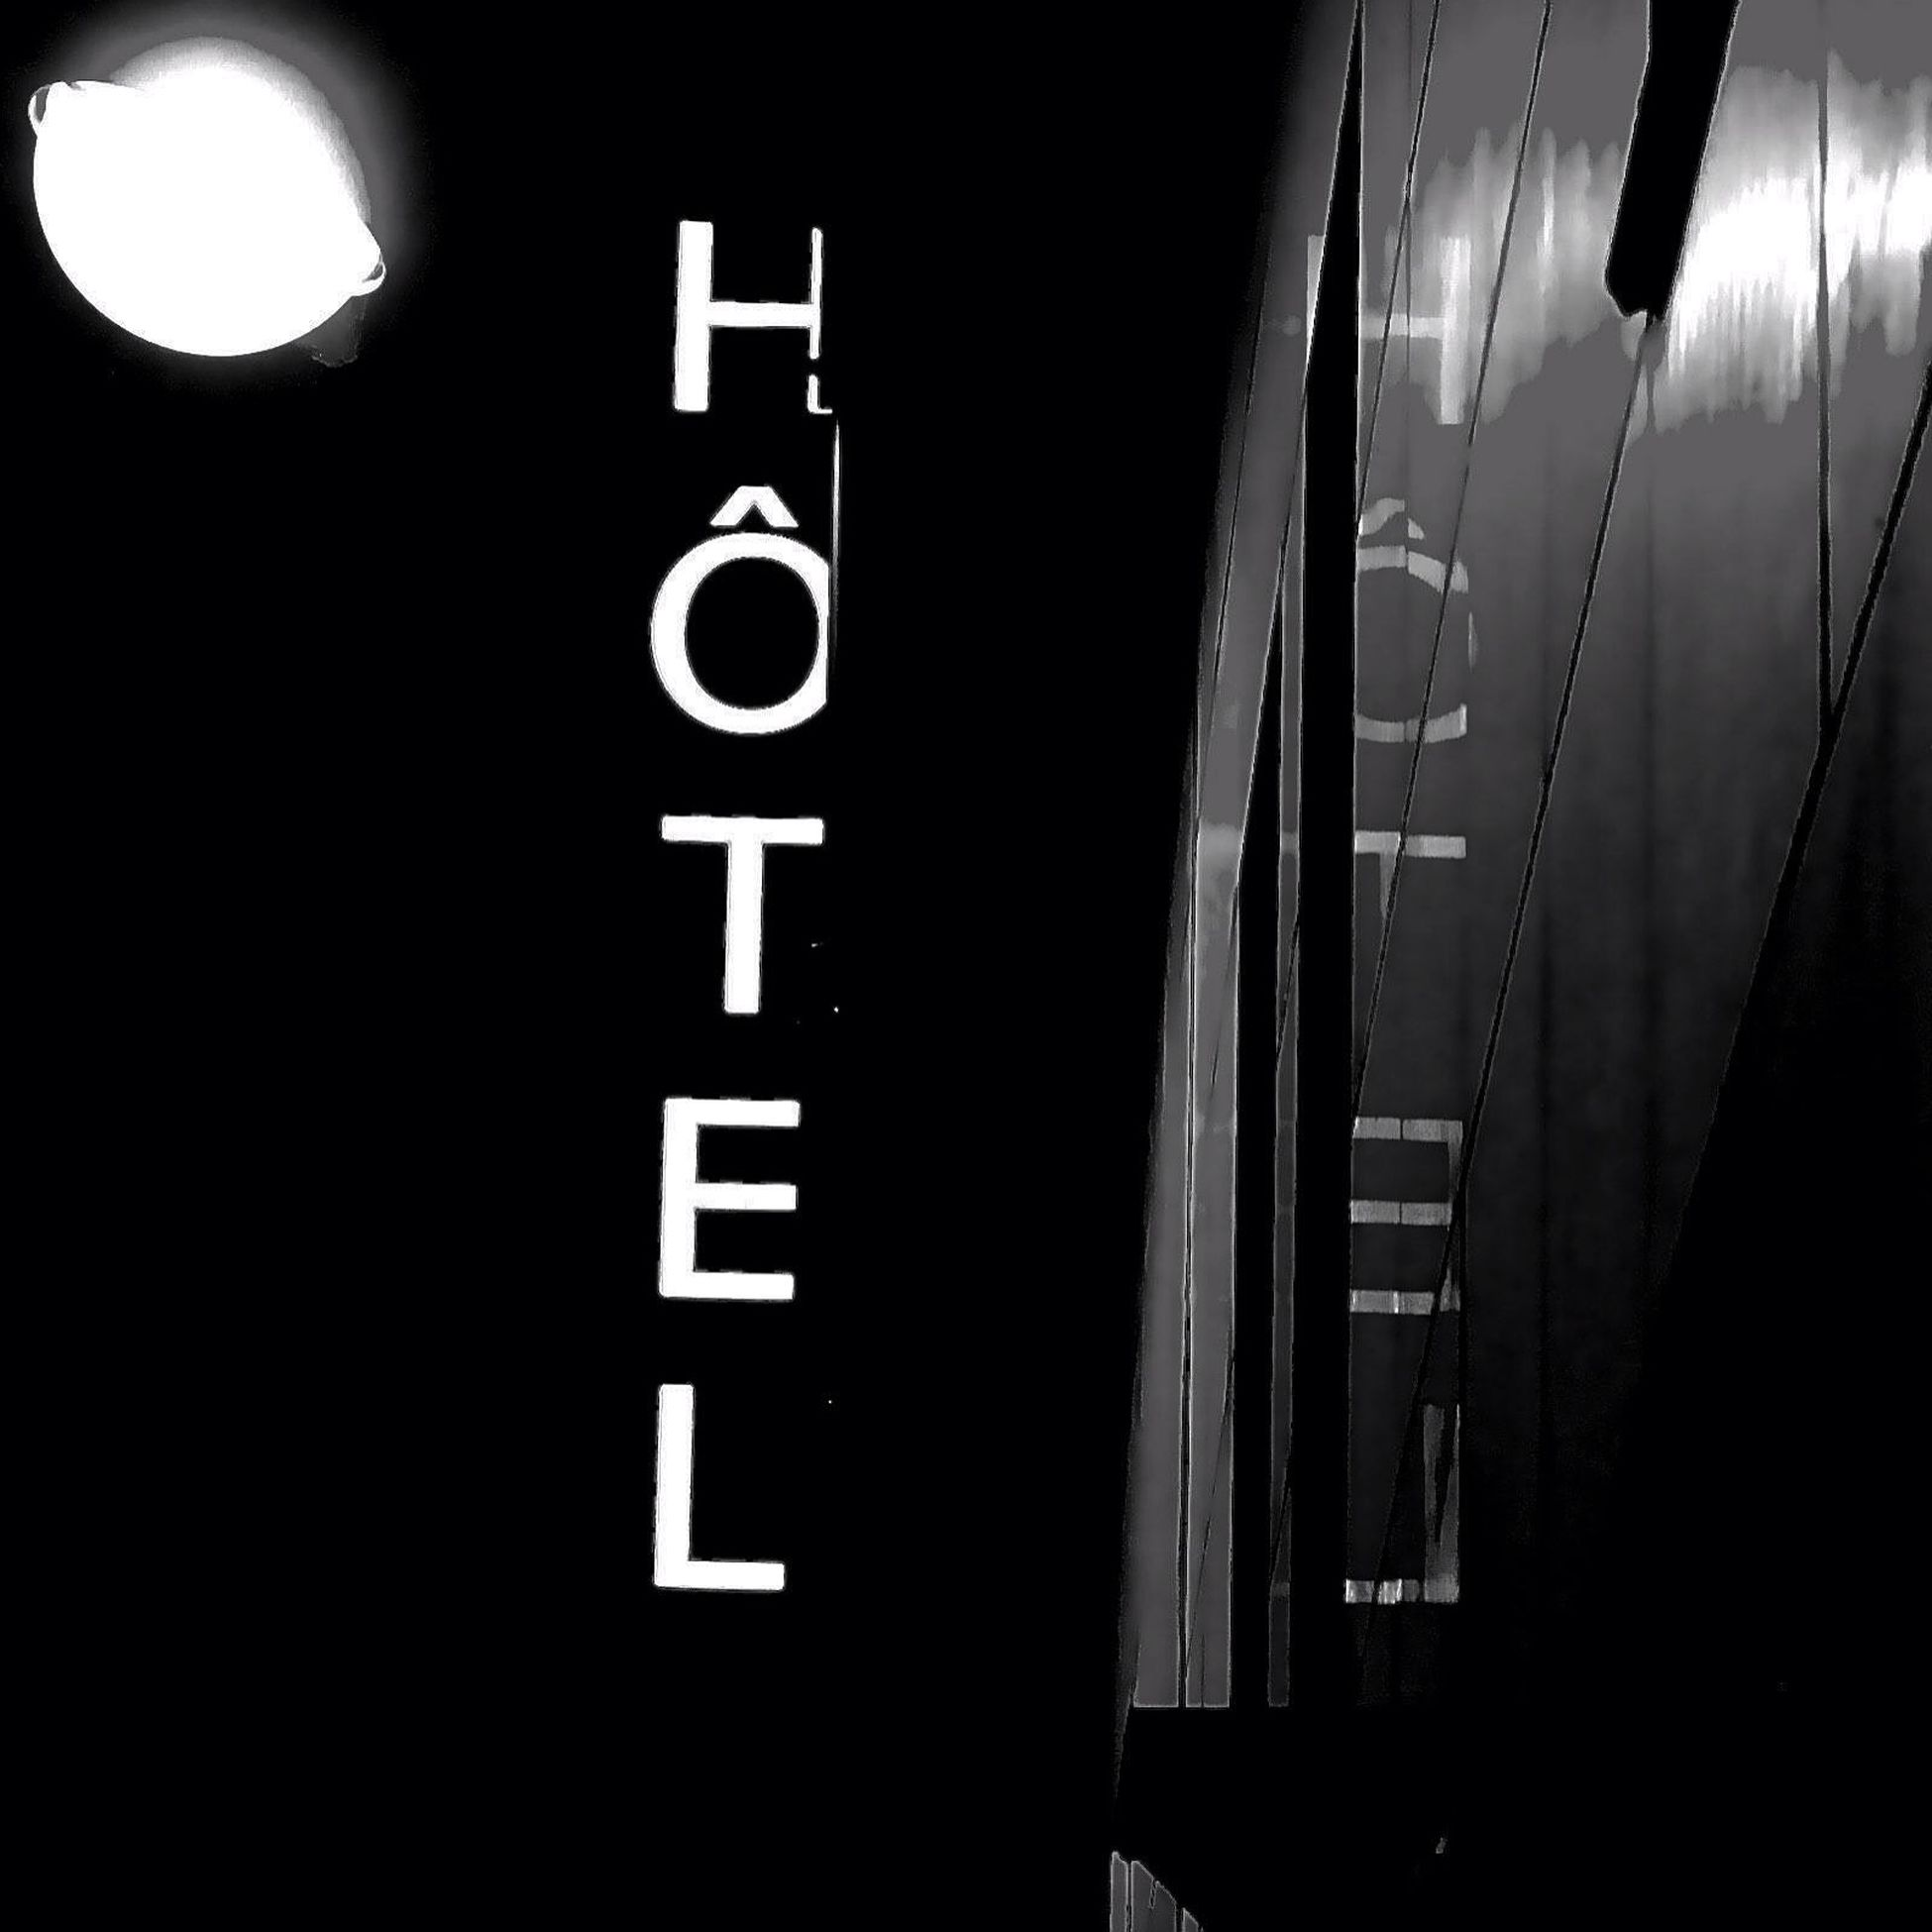 Myhotelproject Dansmonoeil Juliepeiffer Streetphoto Blackandwhite Photography Paris, France